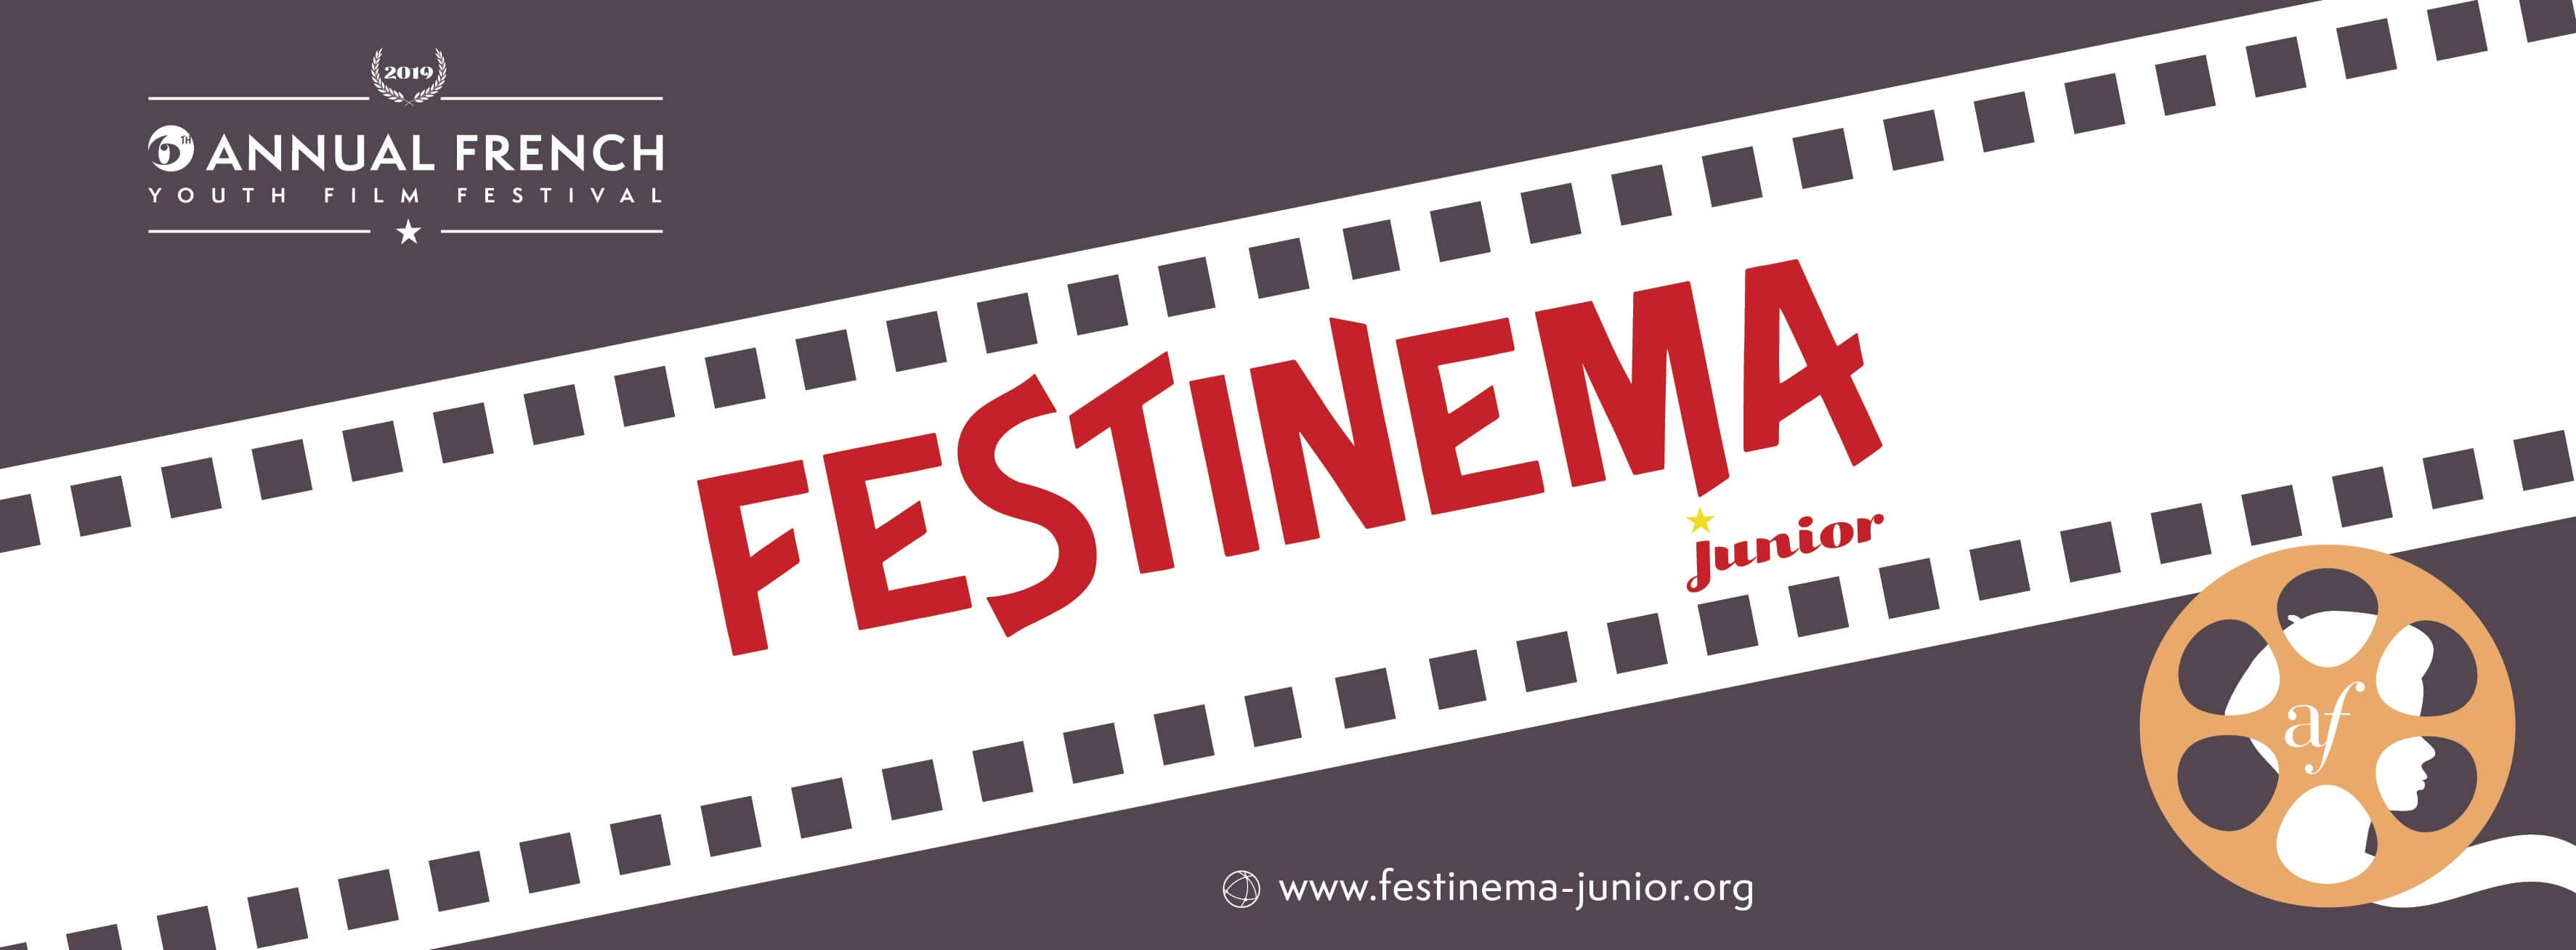 6th ANNUAL FESTINEMA JUNIOR 2019